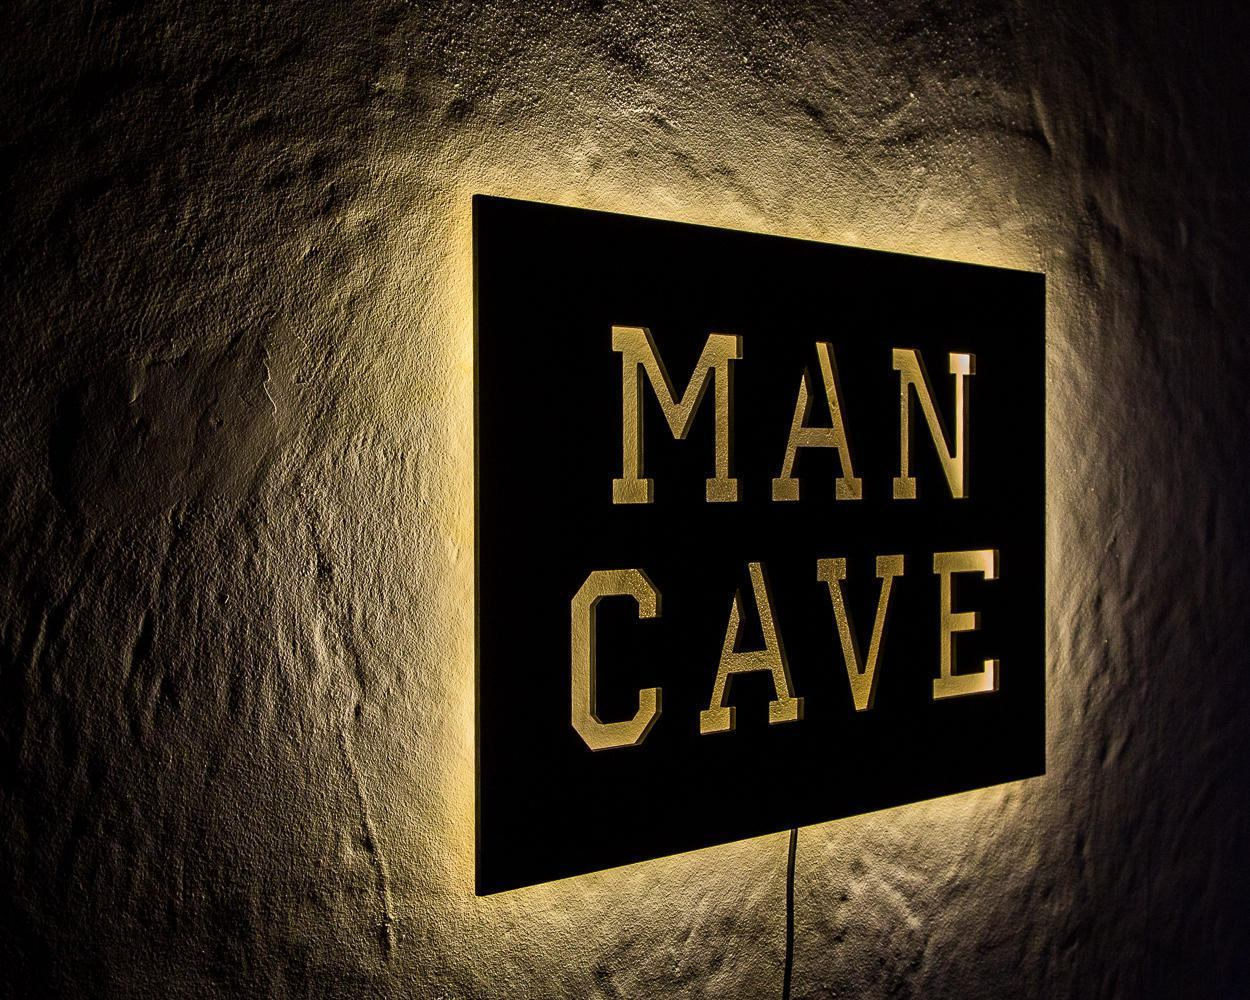 Man Cave Wall light LED Sign // Wall Art // Handmade from MDF Unique Wall LED light // Universal current adapter - Design Atelier Article